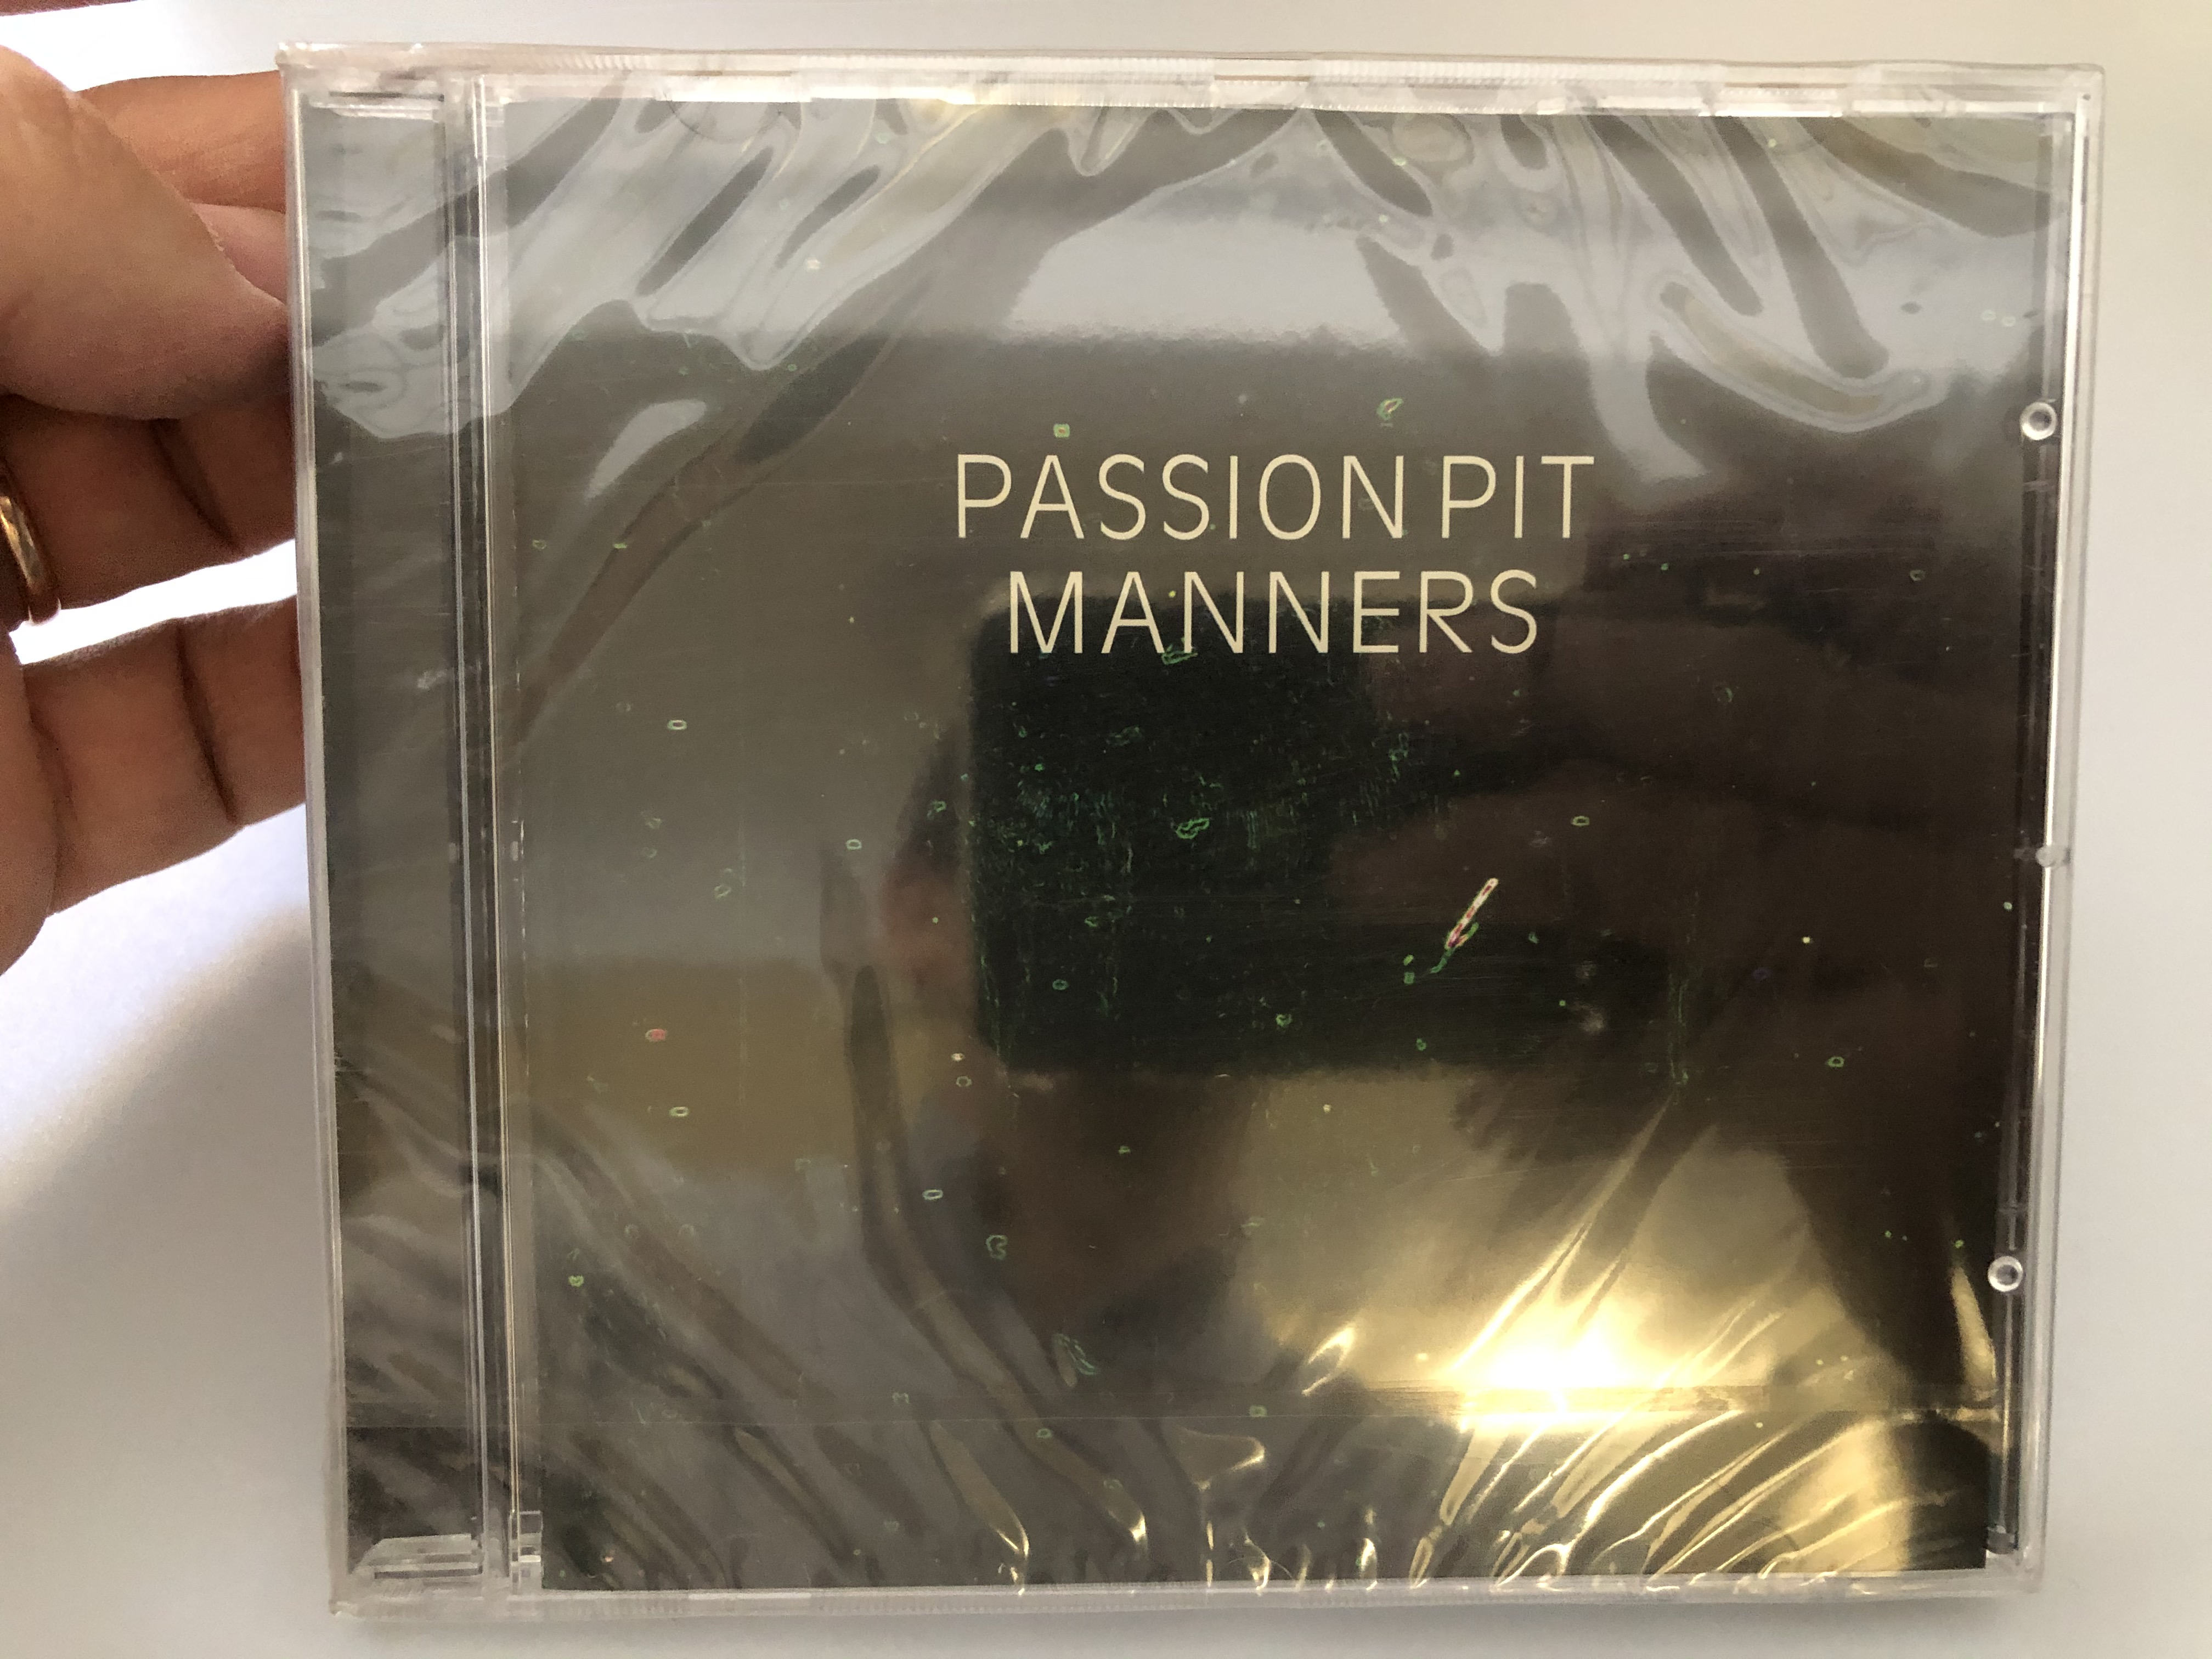 passion-pit-manners-columbia-audio-cd-2009-88697438862-1-.jpg